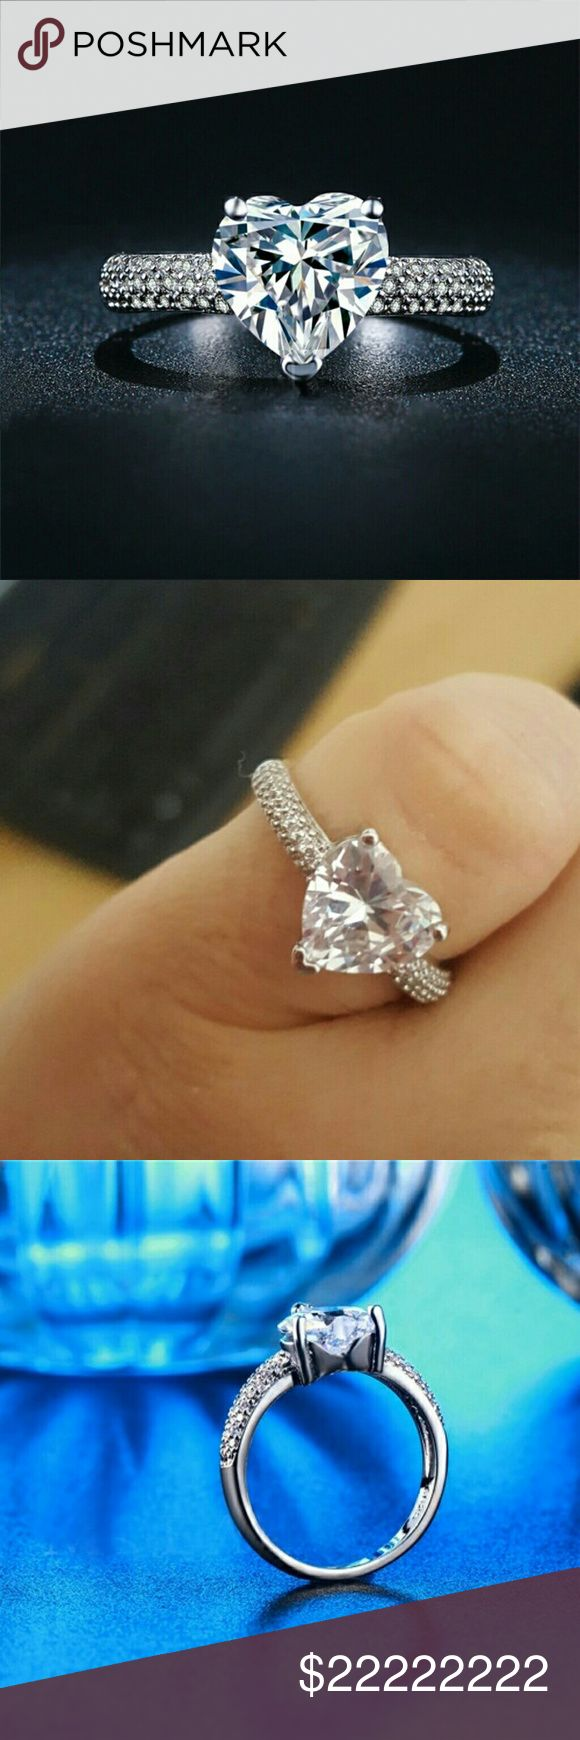 best heart shaped engagement rings images on pinterest